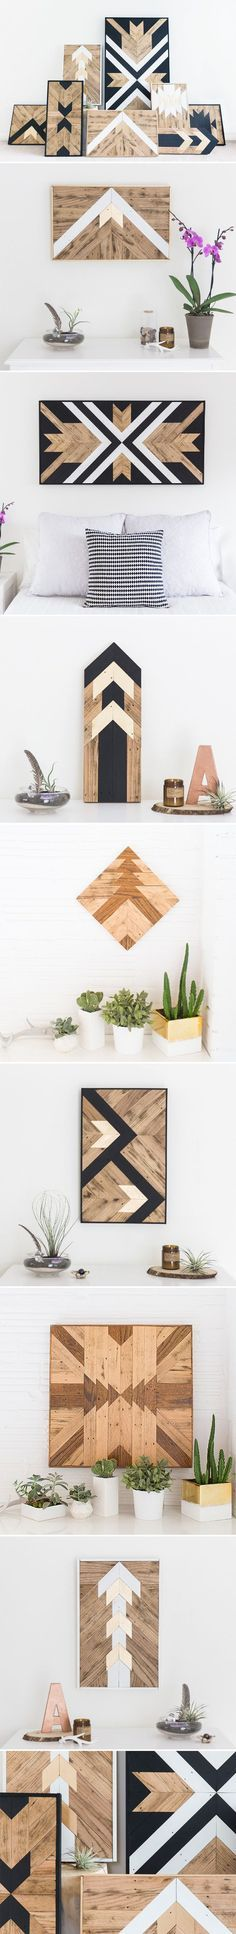 reclaimed wood (from an old oak floor in houston!) art pieces by bri land <3: More